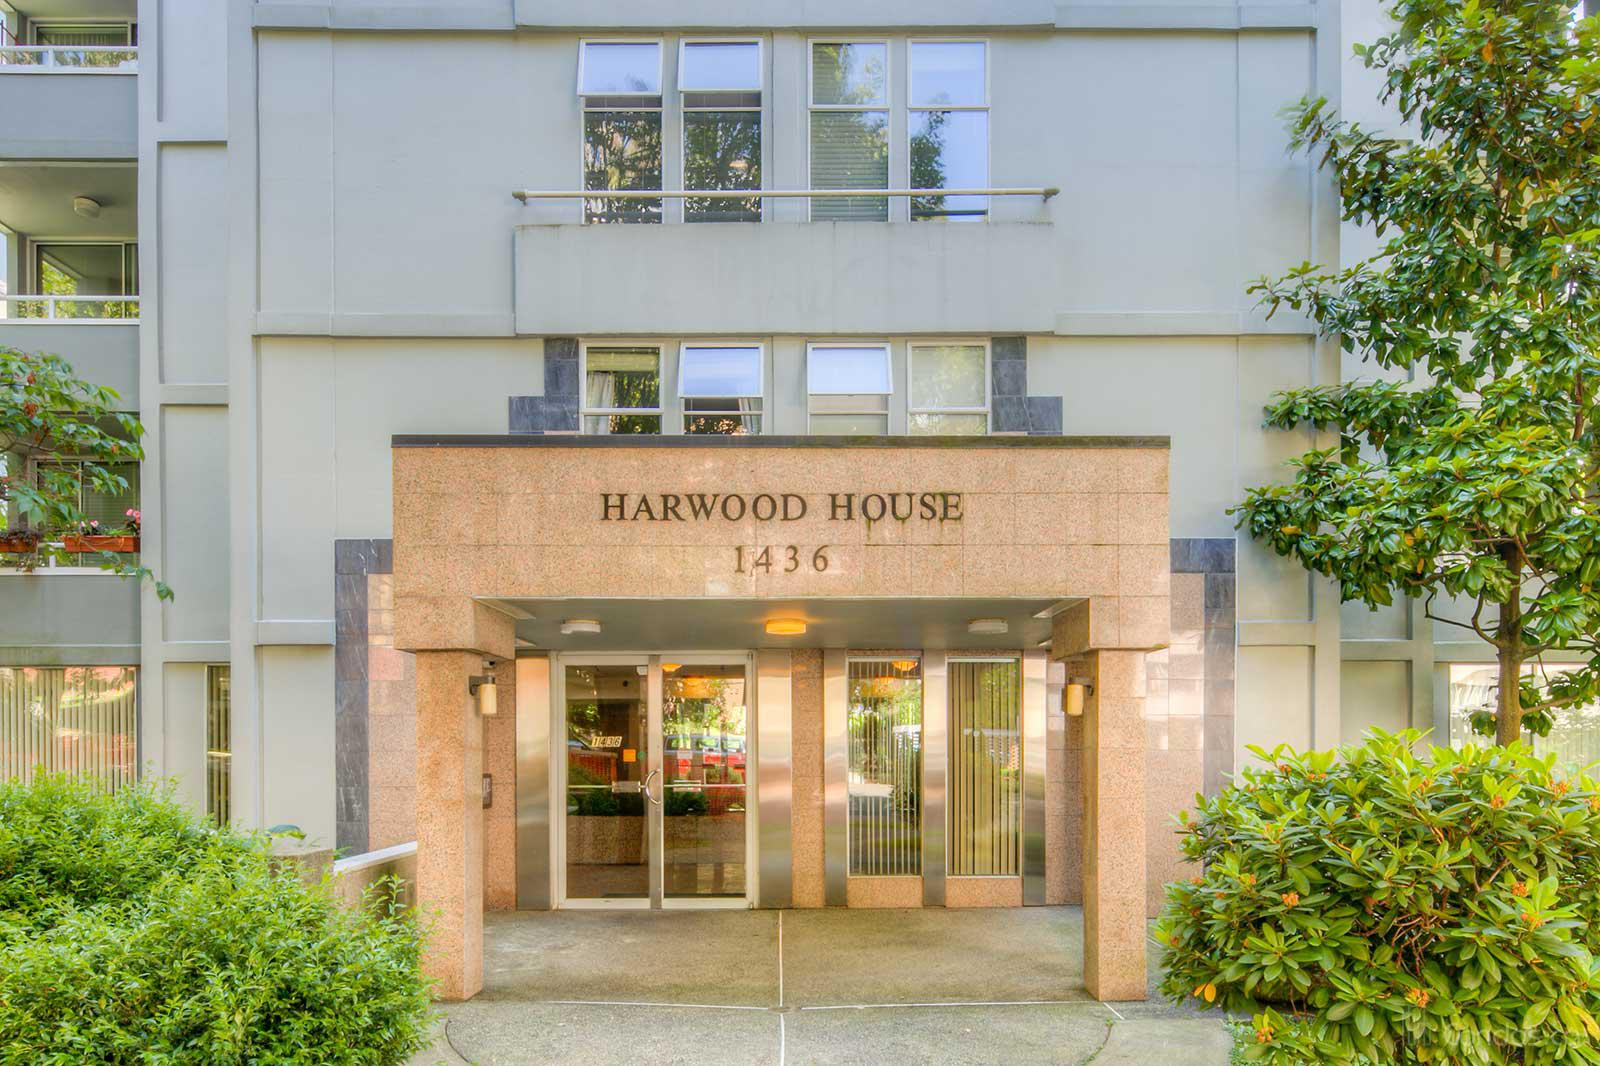 Harwood House at 1436 Harwood St, Vancouver 0